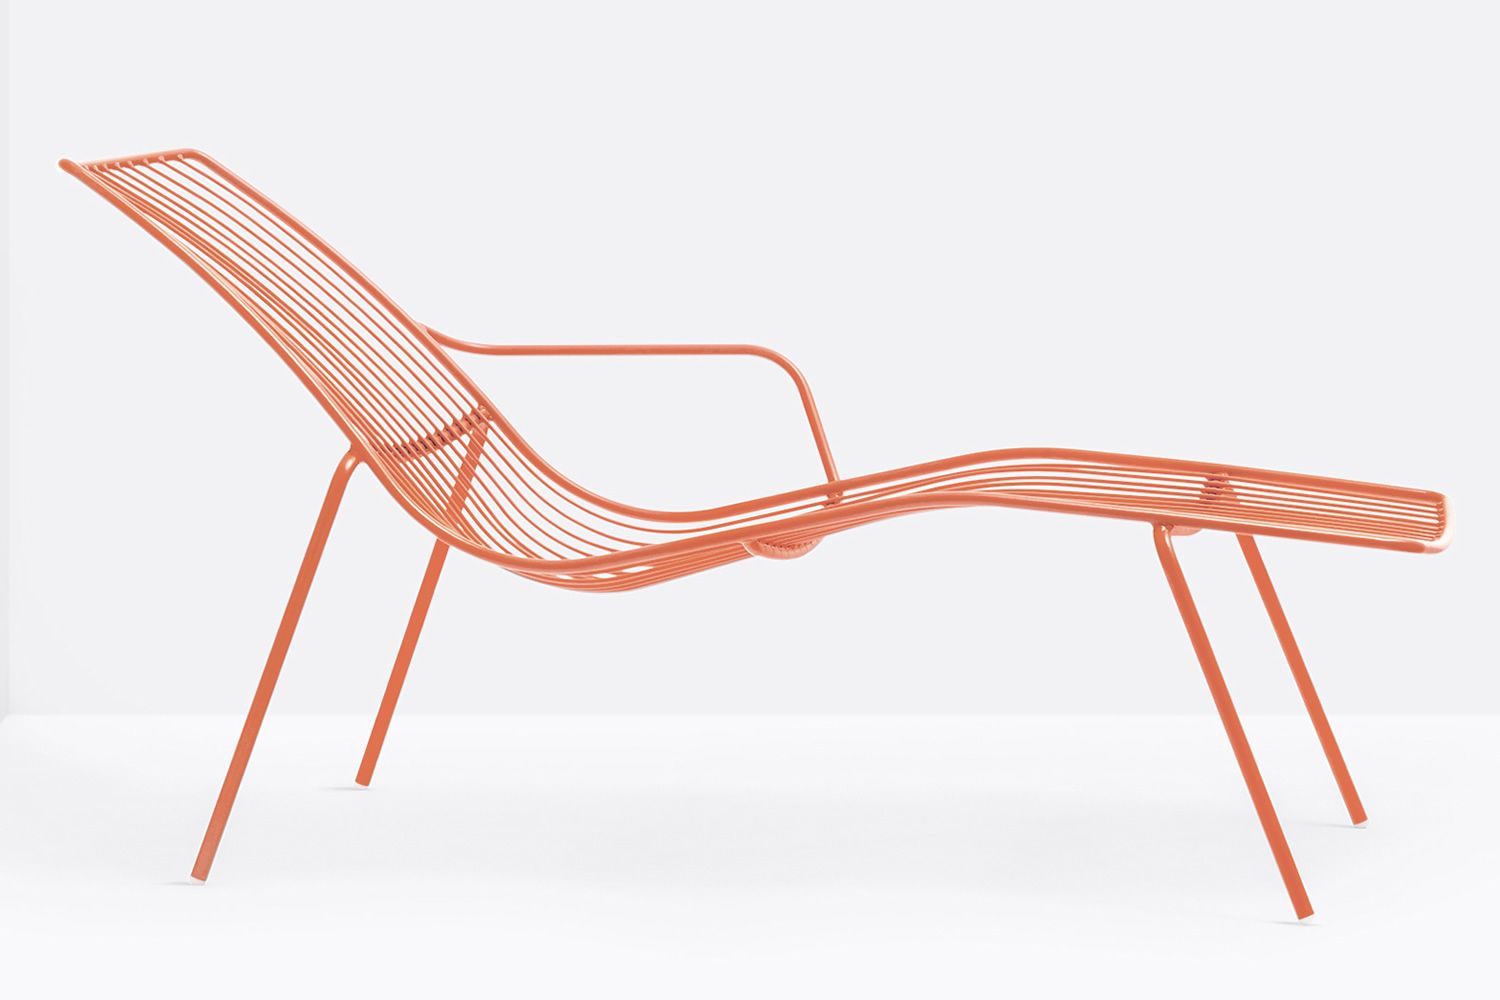 Nolita chaise longue pedrali sunbed in metal for outdoor for Chaise longue orange